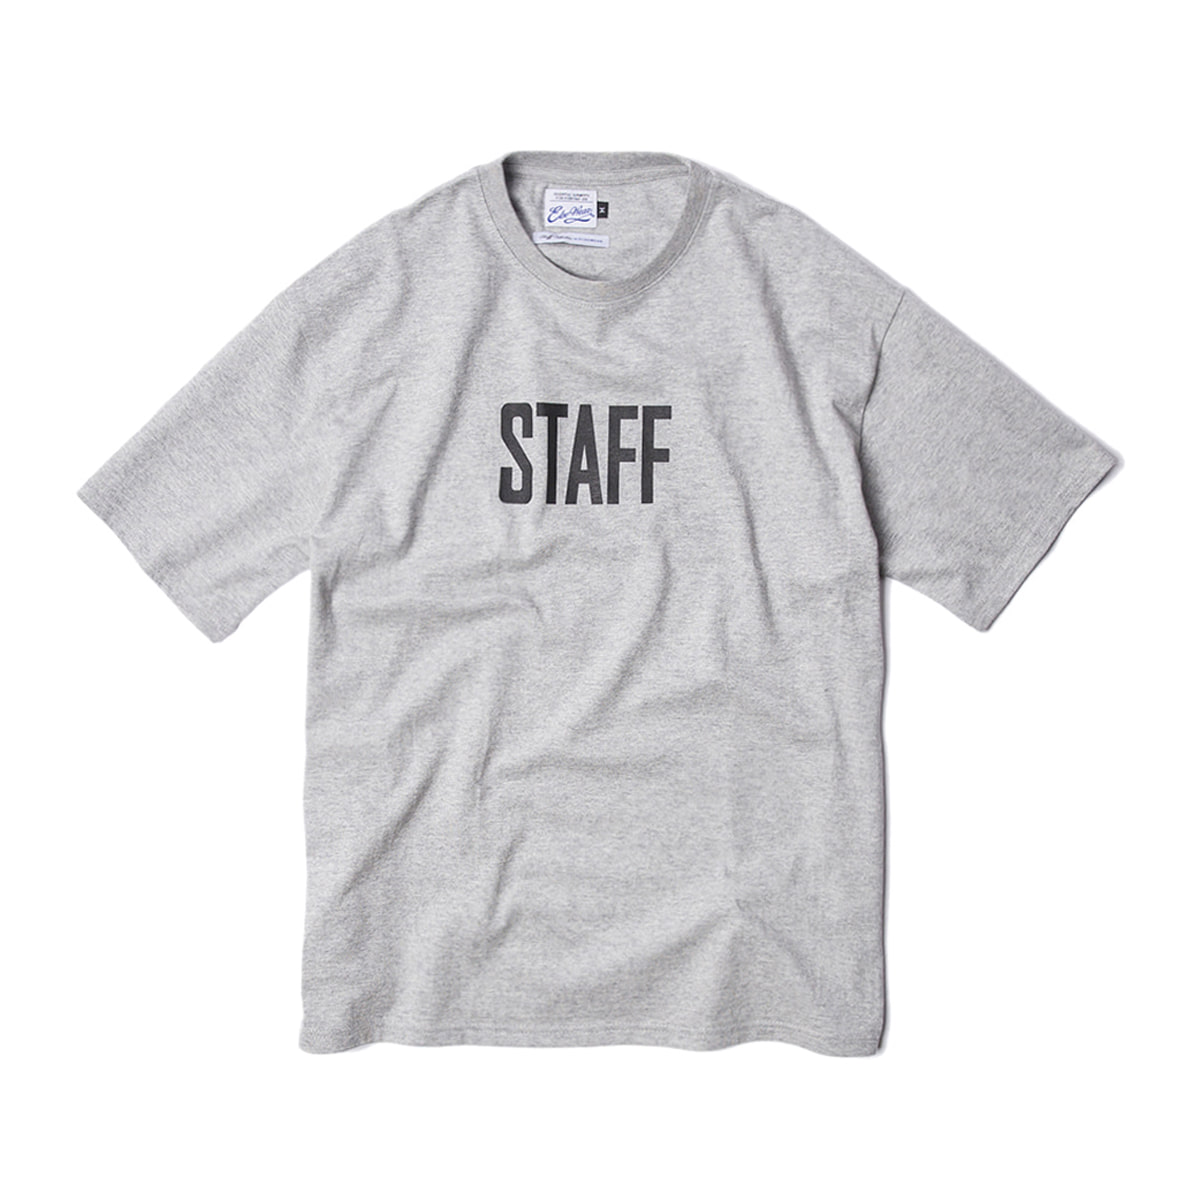 [ELSEWEAR] ELSEWEAR STAFF COLLECTION SS TEE 'BALCKBEAN'